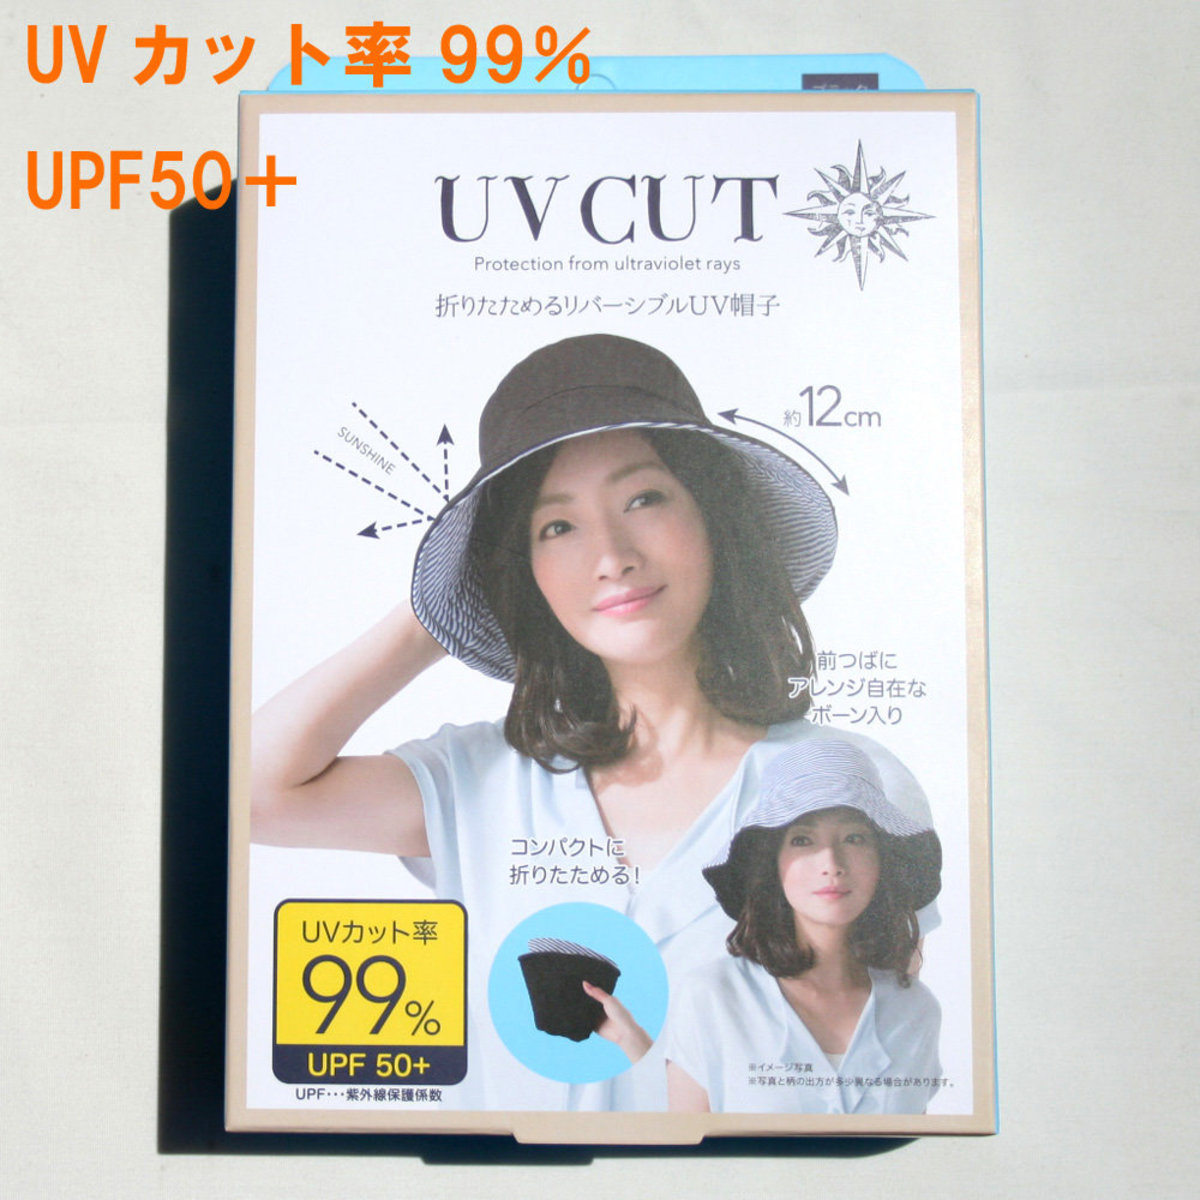 Folding double-sided UV protection hat